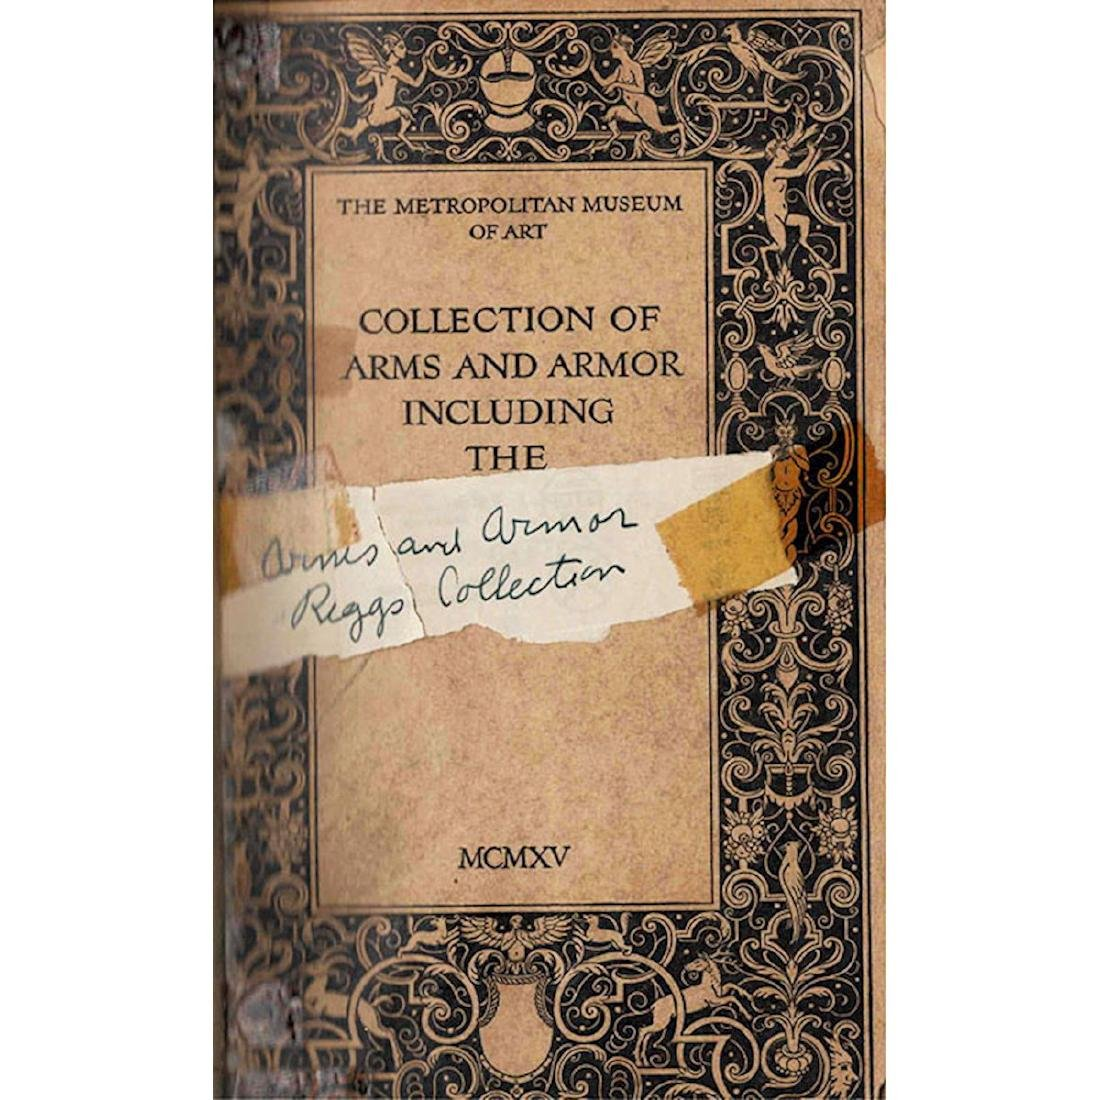 SET OF TWO BOOKS ON ANTIQUE ARMS AND ARMOR - 2